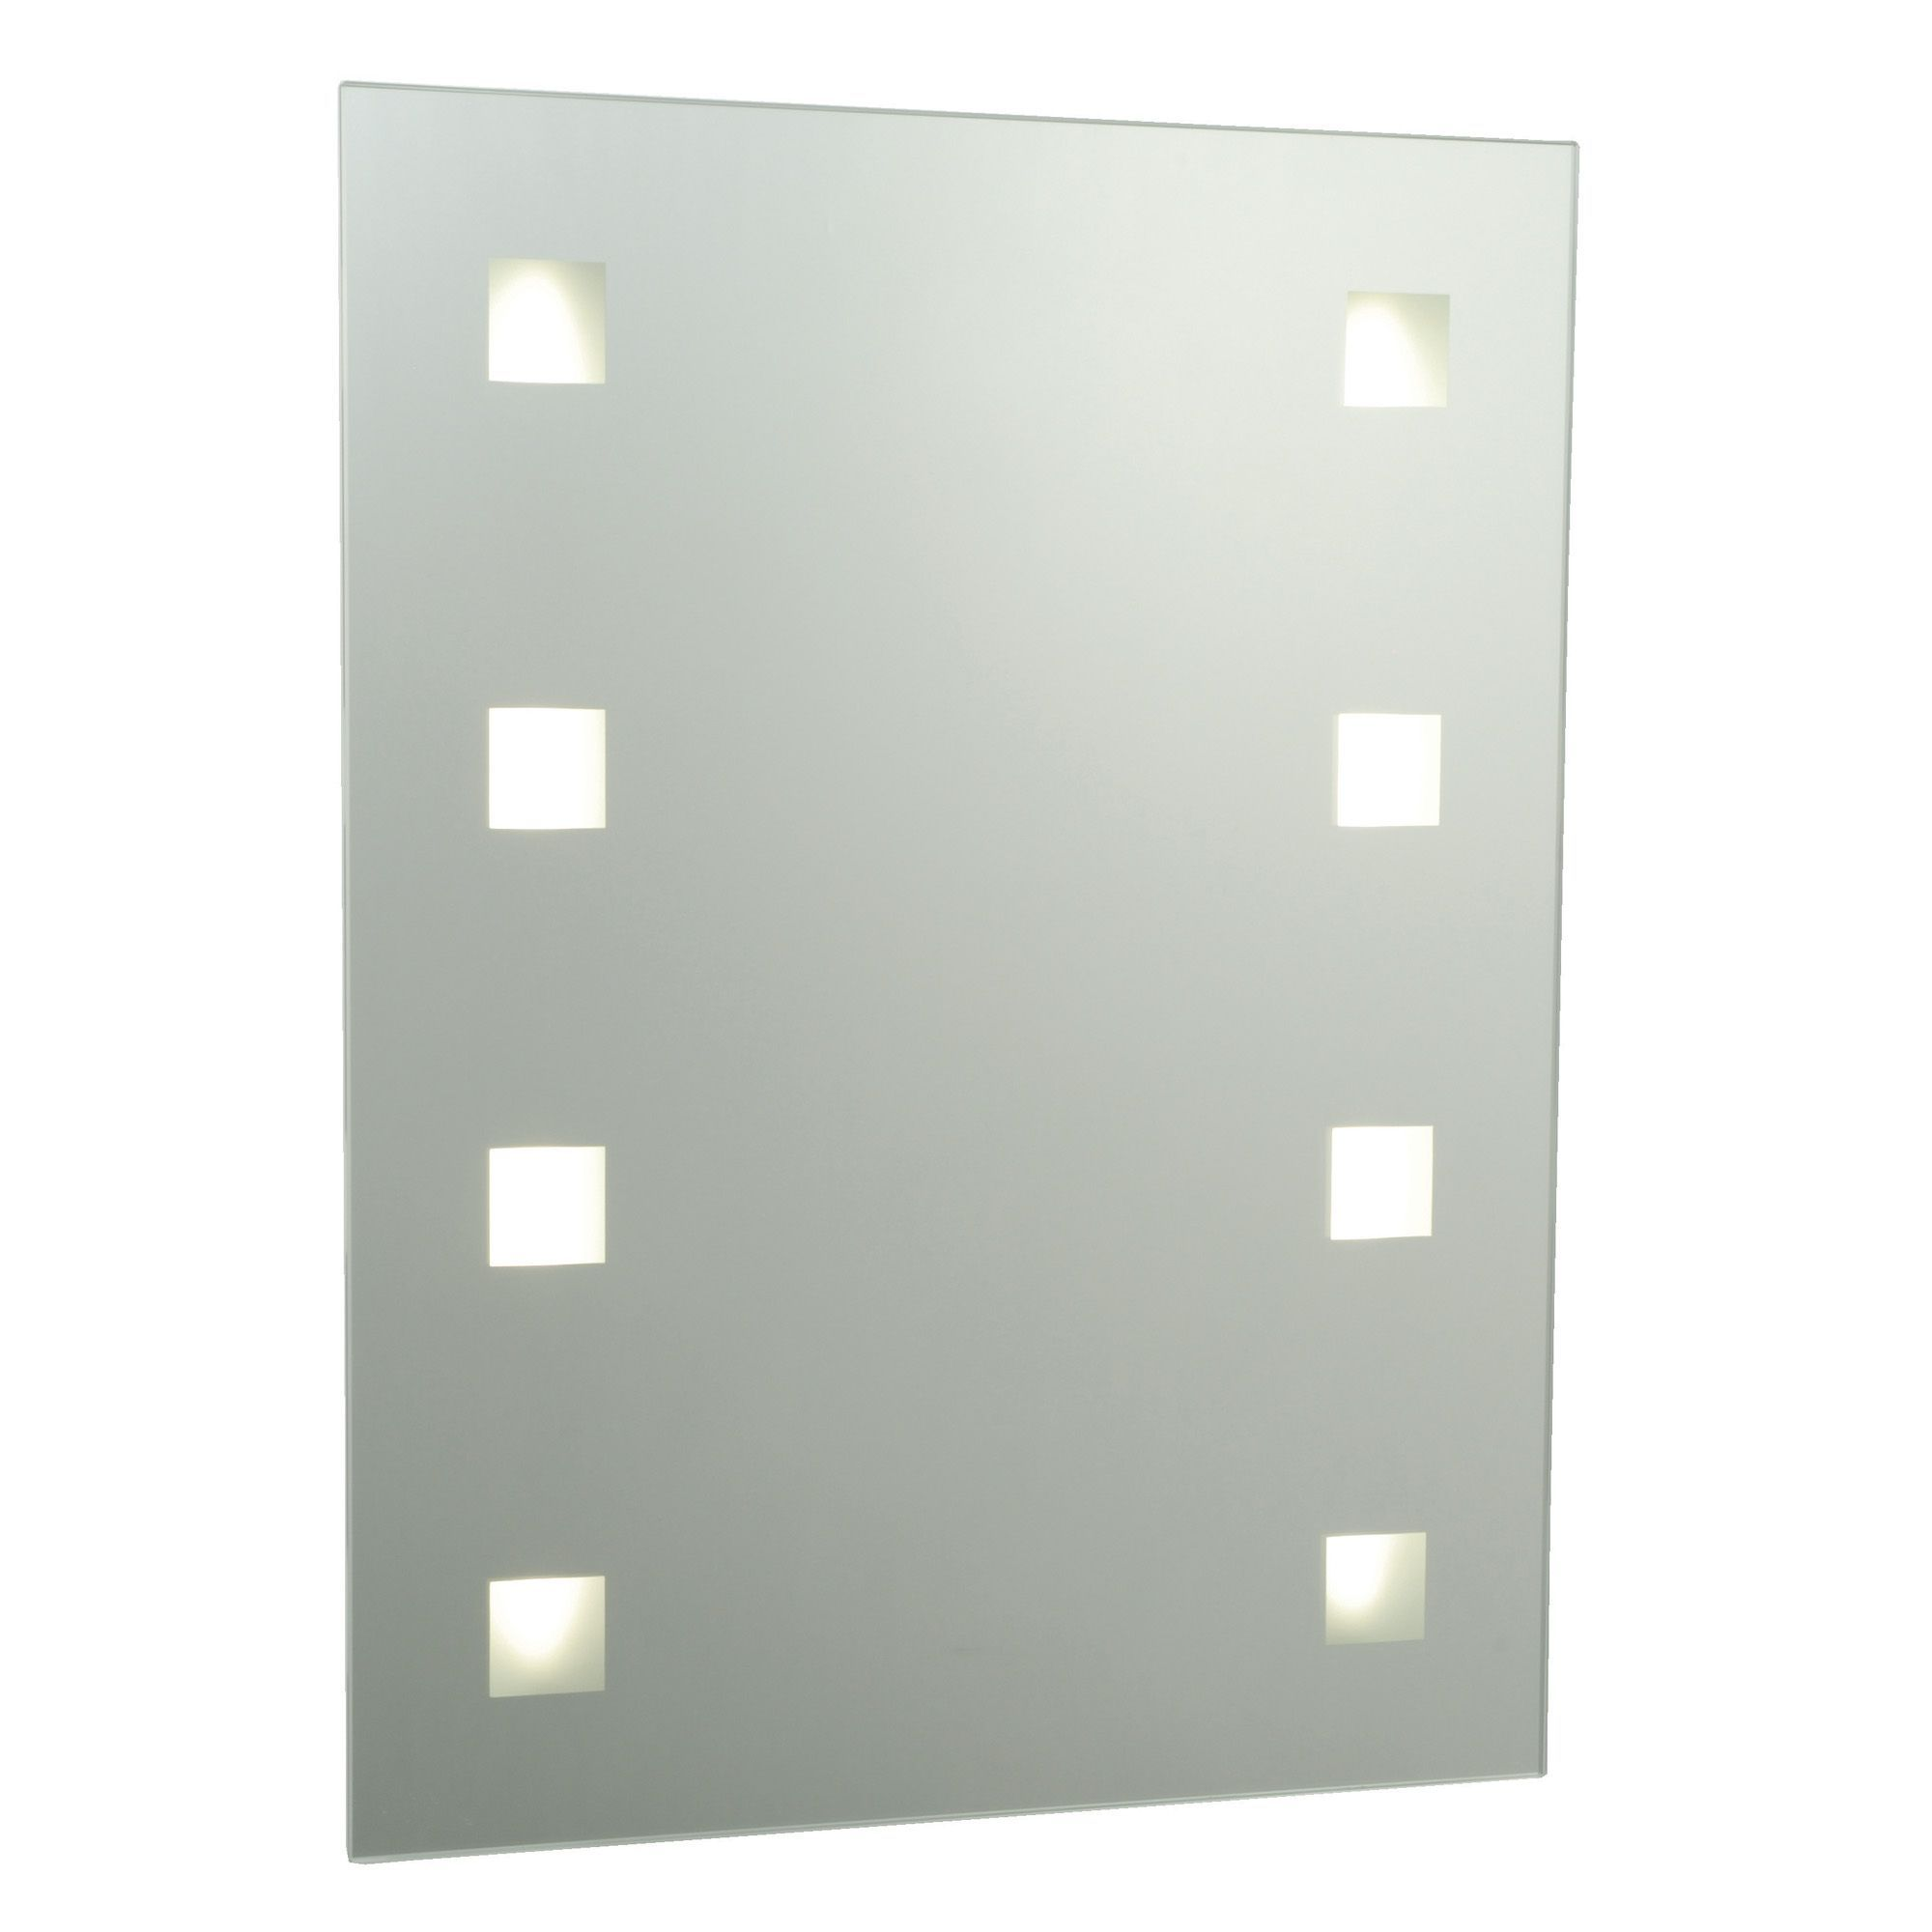 Cooke Amp Lewis Tajo Illuminated Rectangular Mirror W 450mm H 600mm Departments Diy At B Amp Q Rectangular Mirror Bathroom Mirrors Diy Mirror